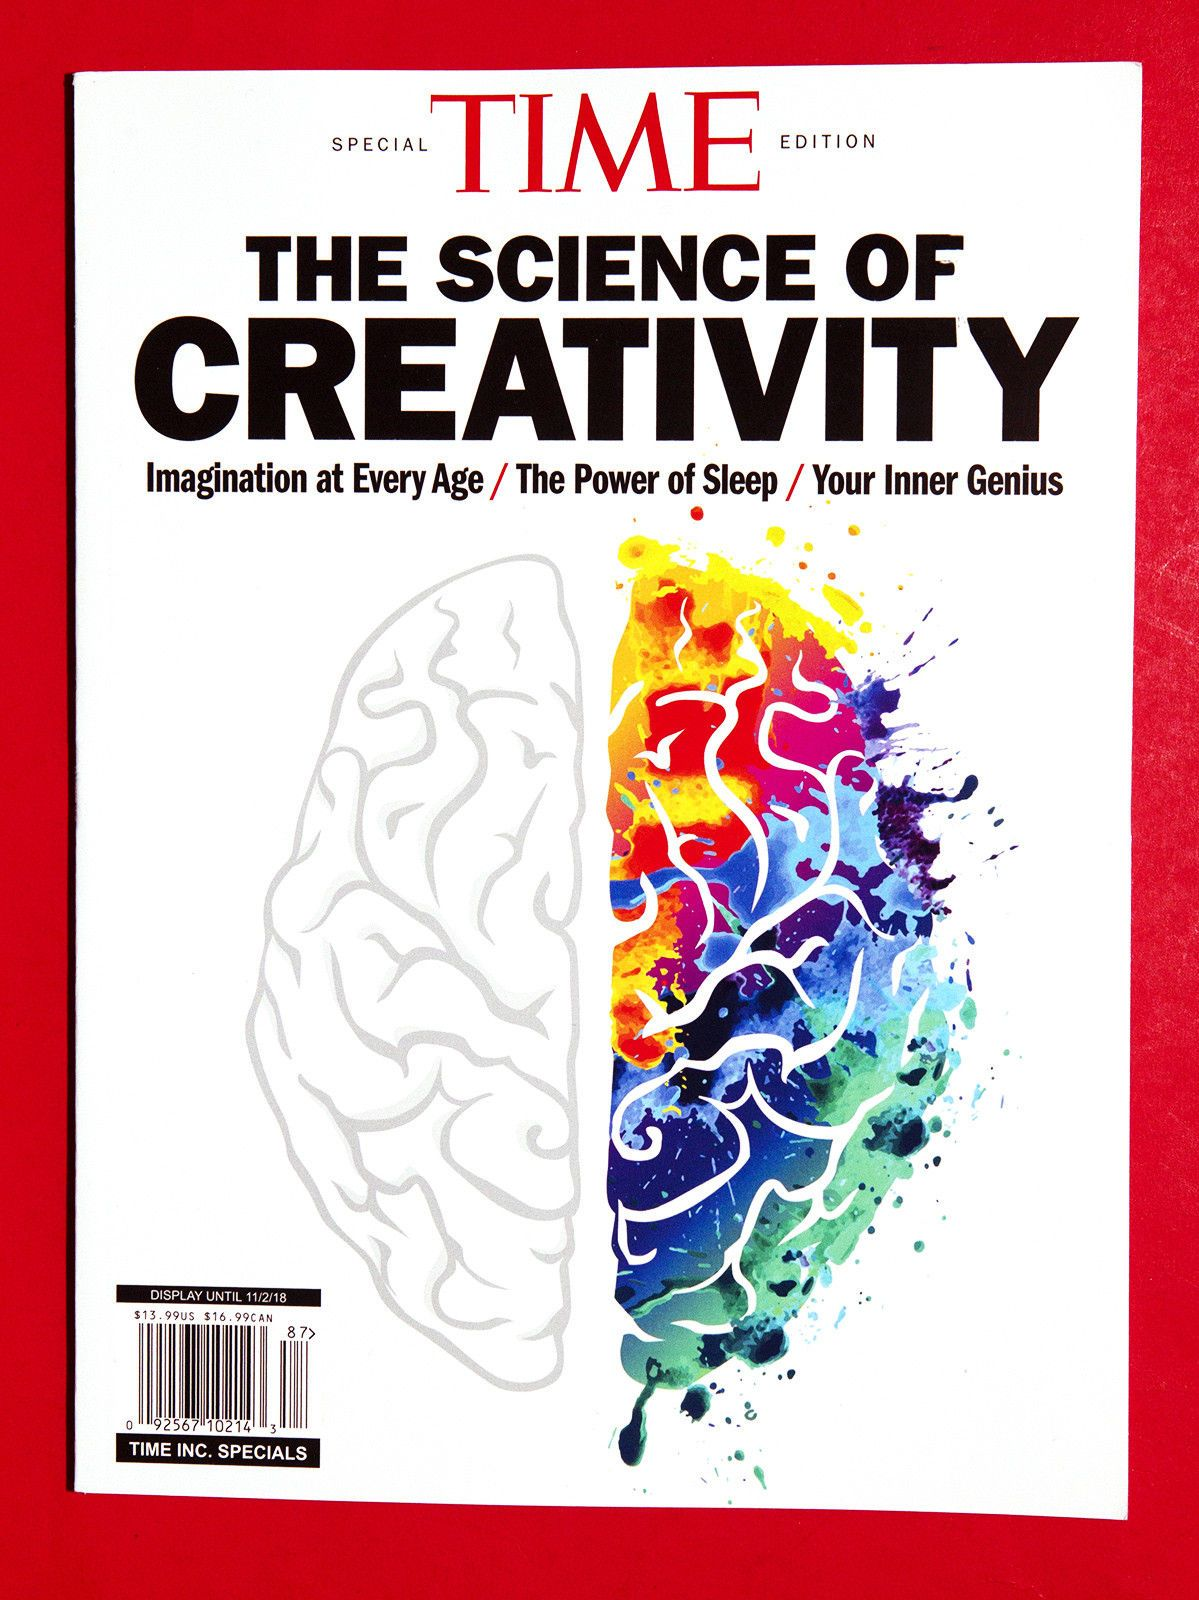 time special edition 2018 science of creativity